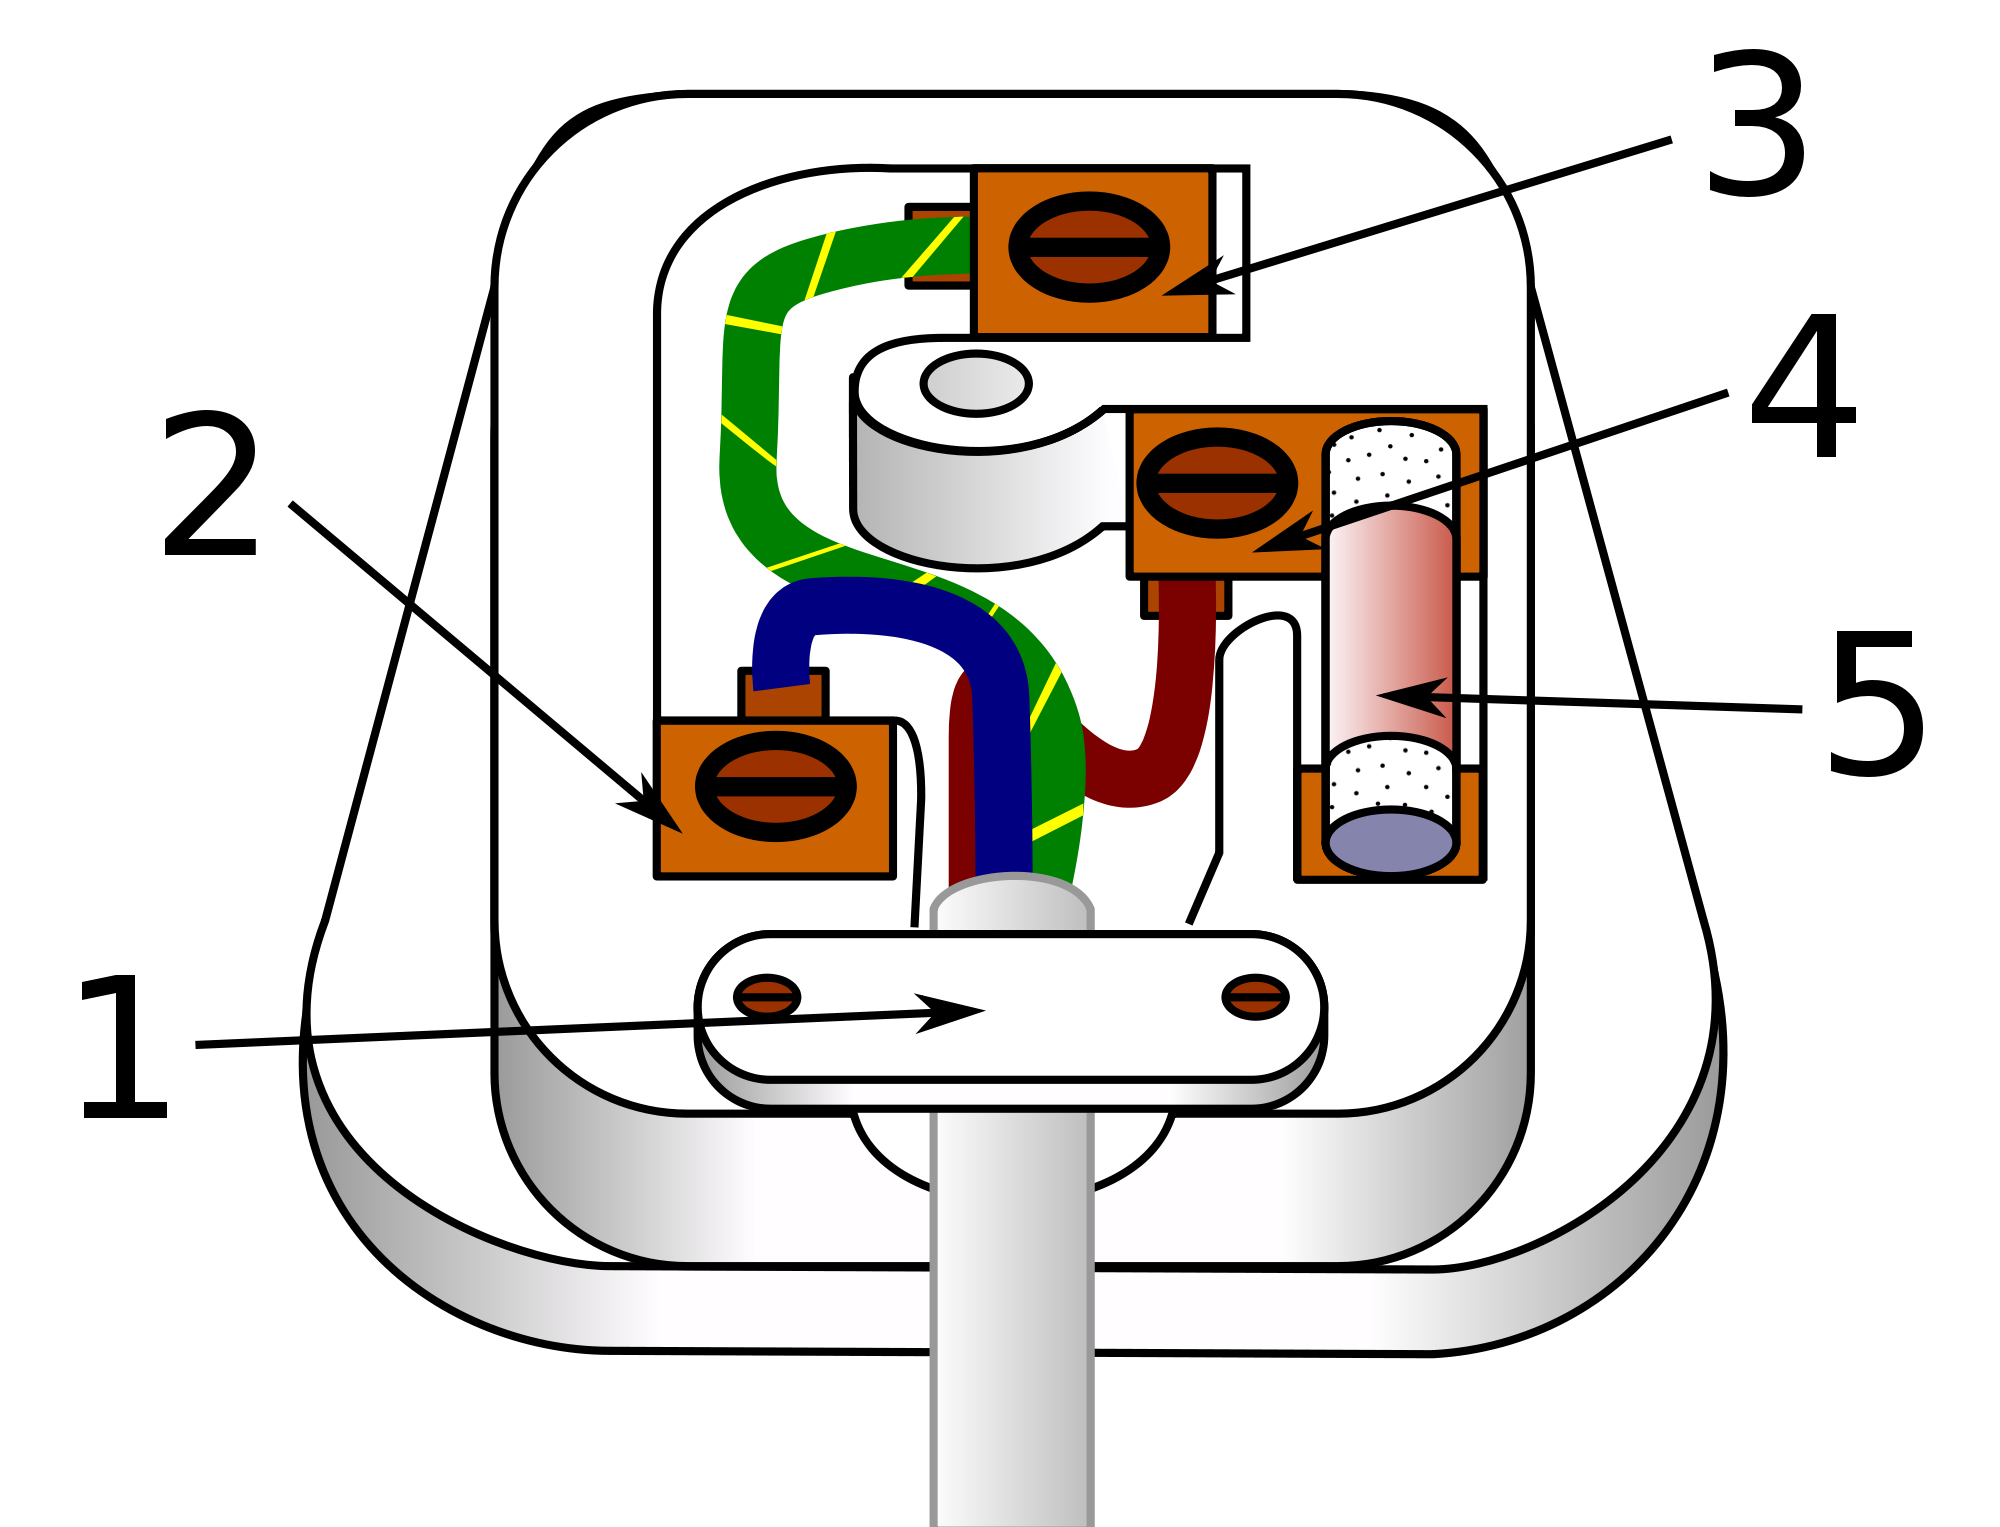 how to wire a 3 pin plug mmk electricians dublin rh mmkelectricians ie how to wire a 3 pin plug connect 3 pin plug